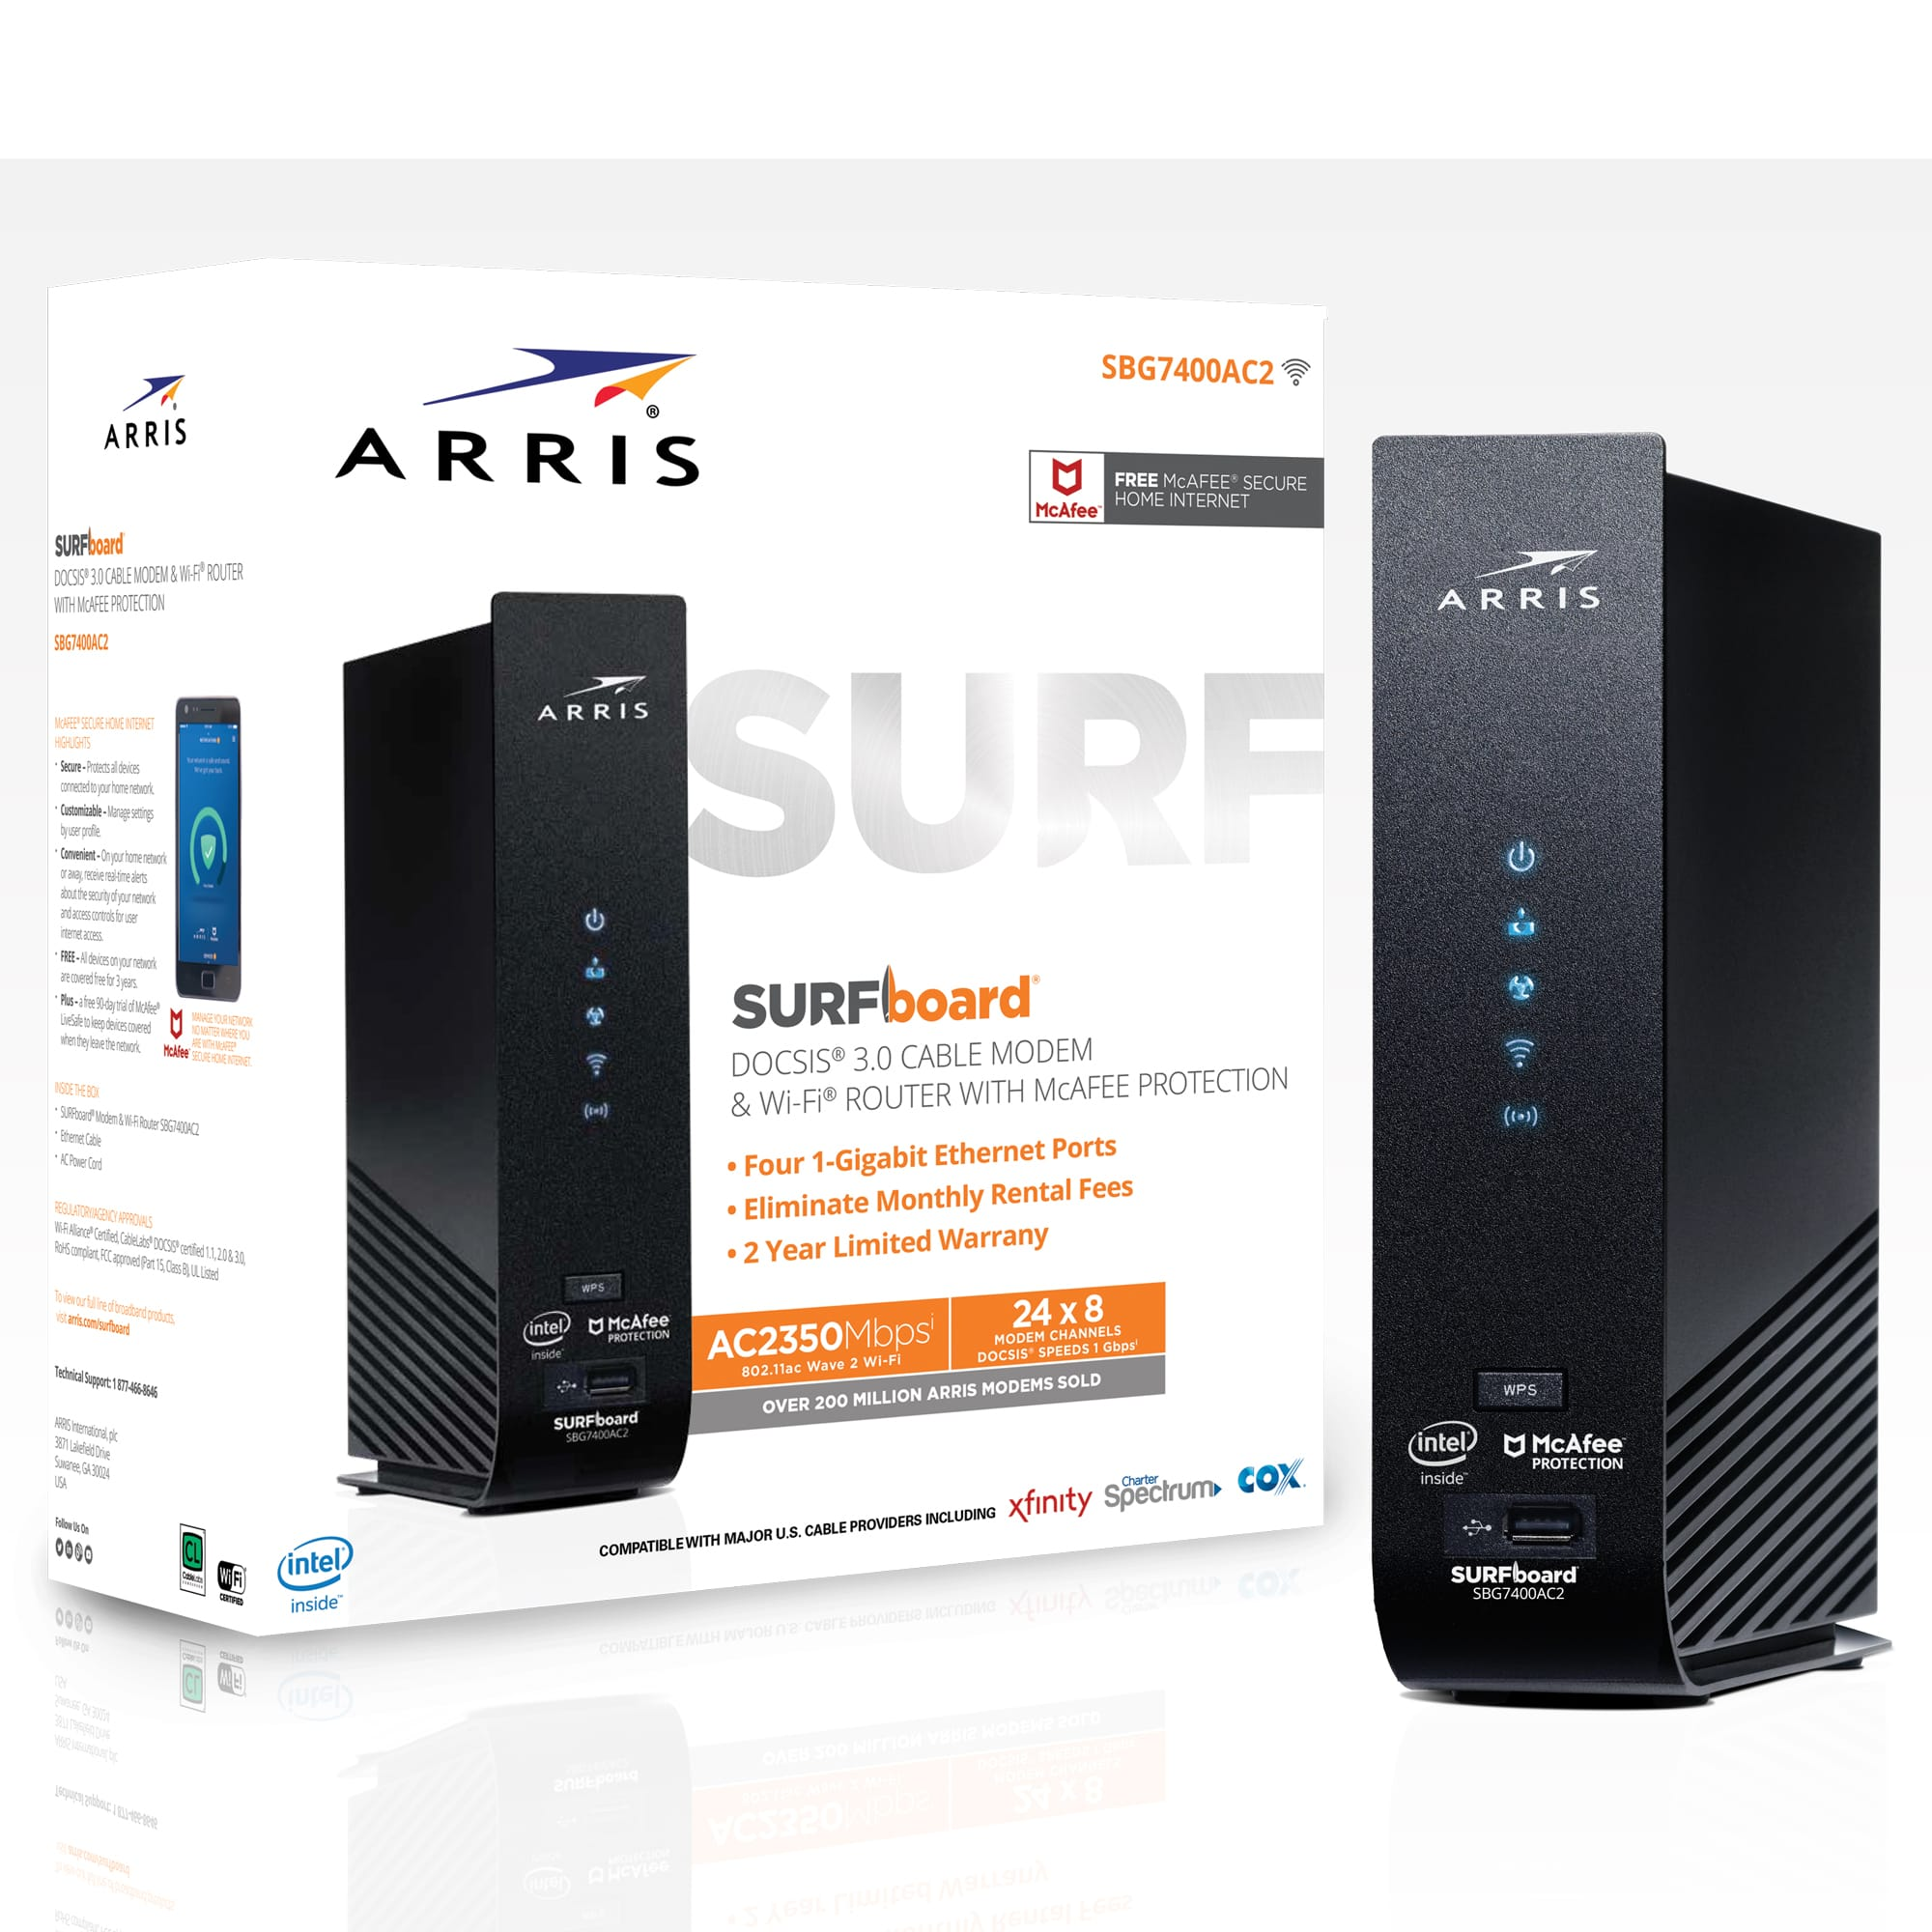 ARRIS SURFboard AC2350 (24x8) Cable Modem Router Combo